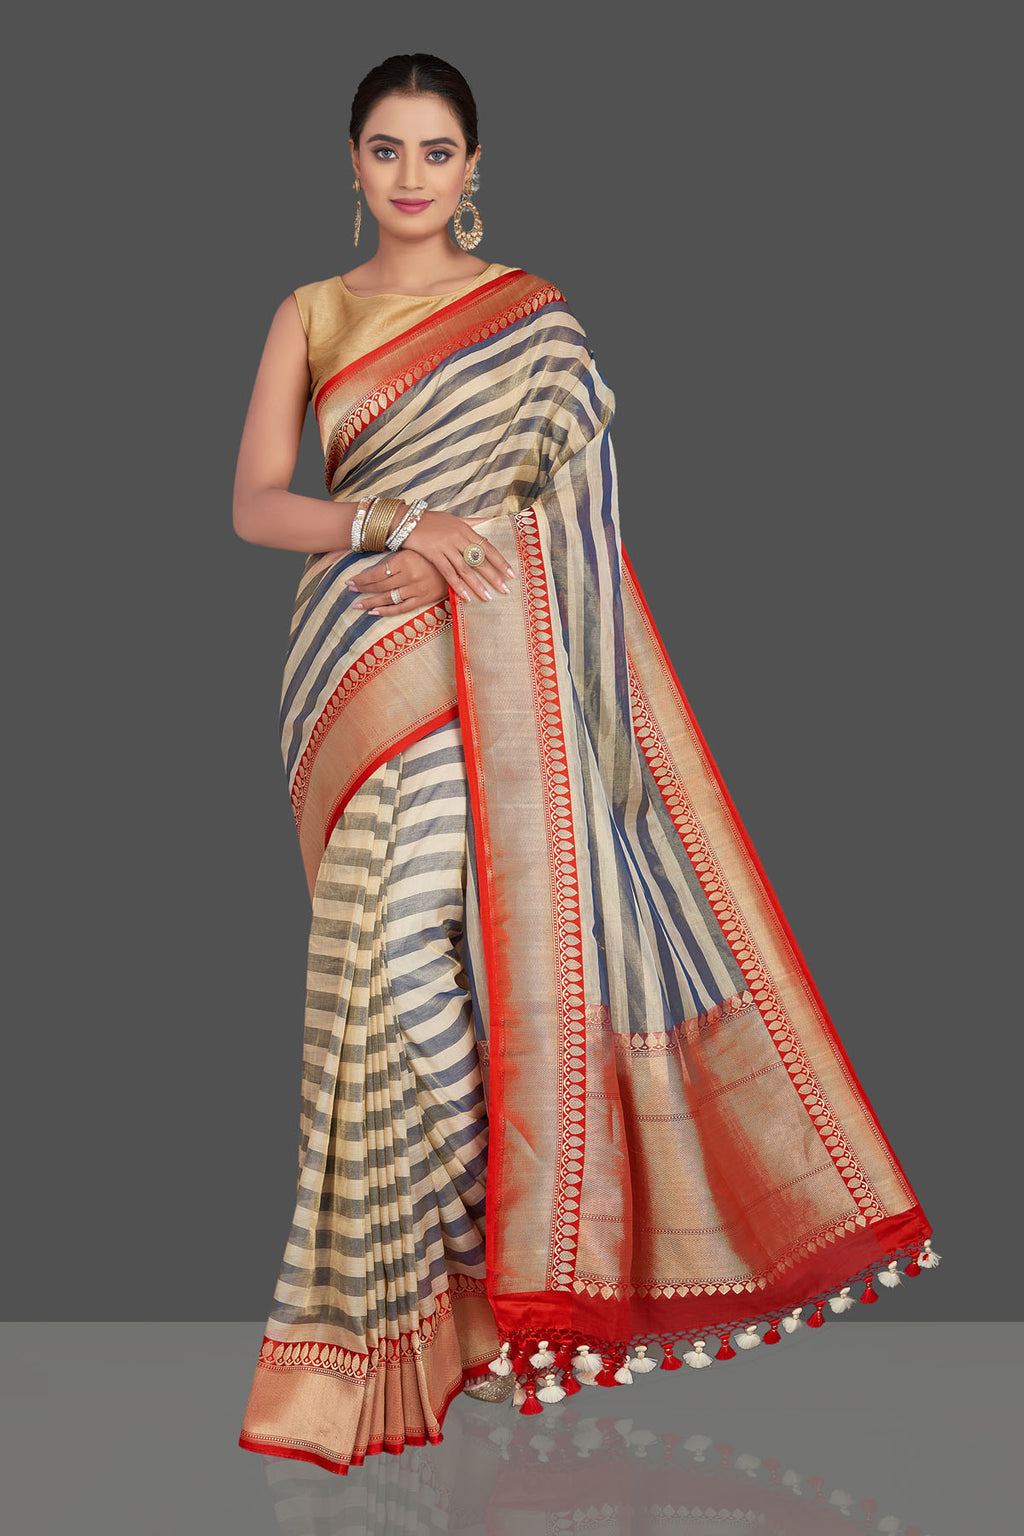 Buy beautiful grey and cream stripes tissue sari online in USA with red zari border. Be the talk of the occasion in beautiful designer sarees, tussar silk saris, georgette sarees, handloom sarees, pure silk sarees from Pure Elegance Indian saree store in USA.-full view